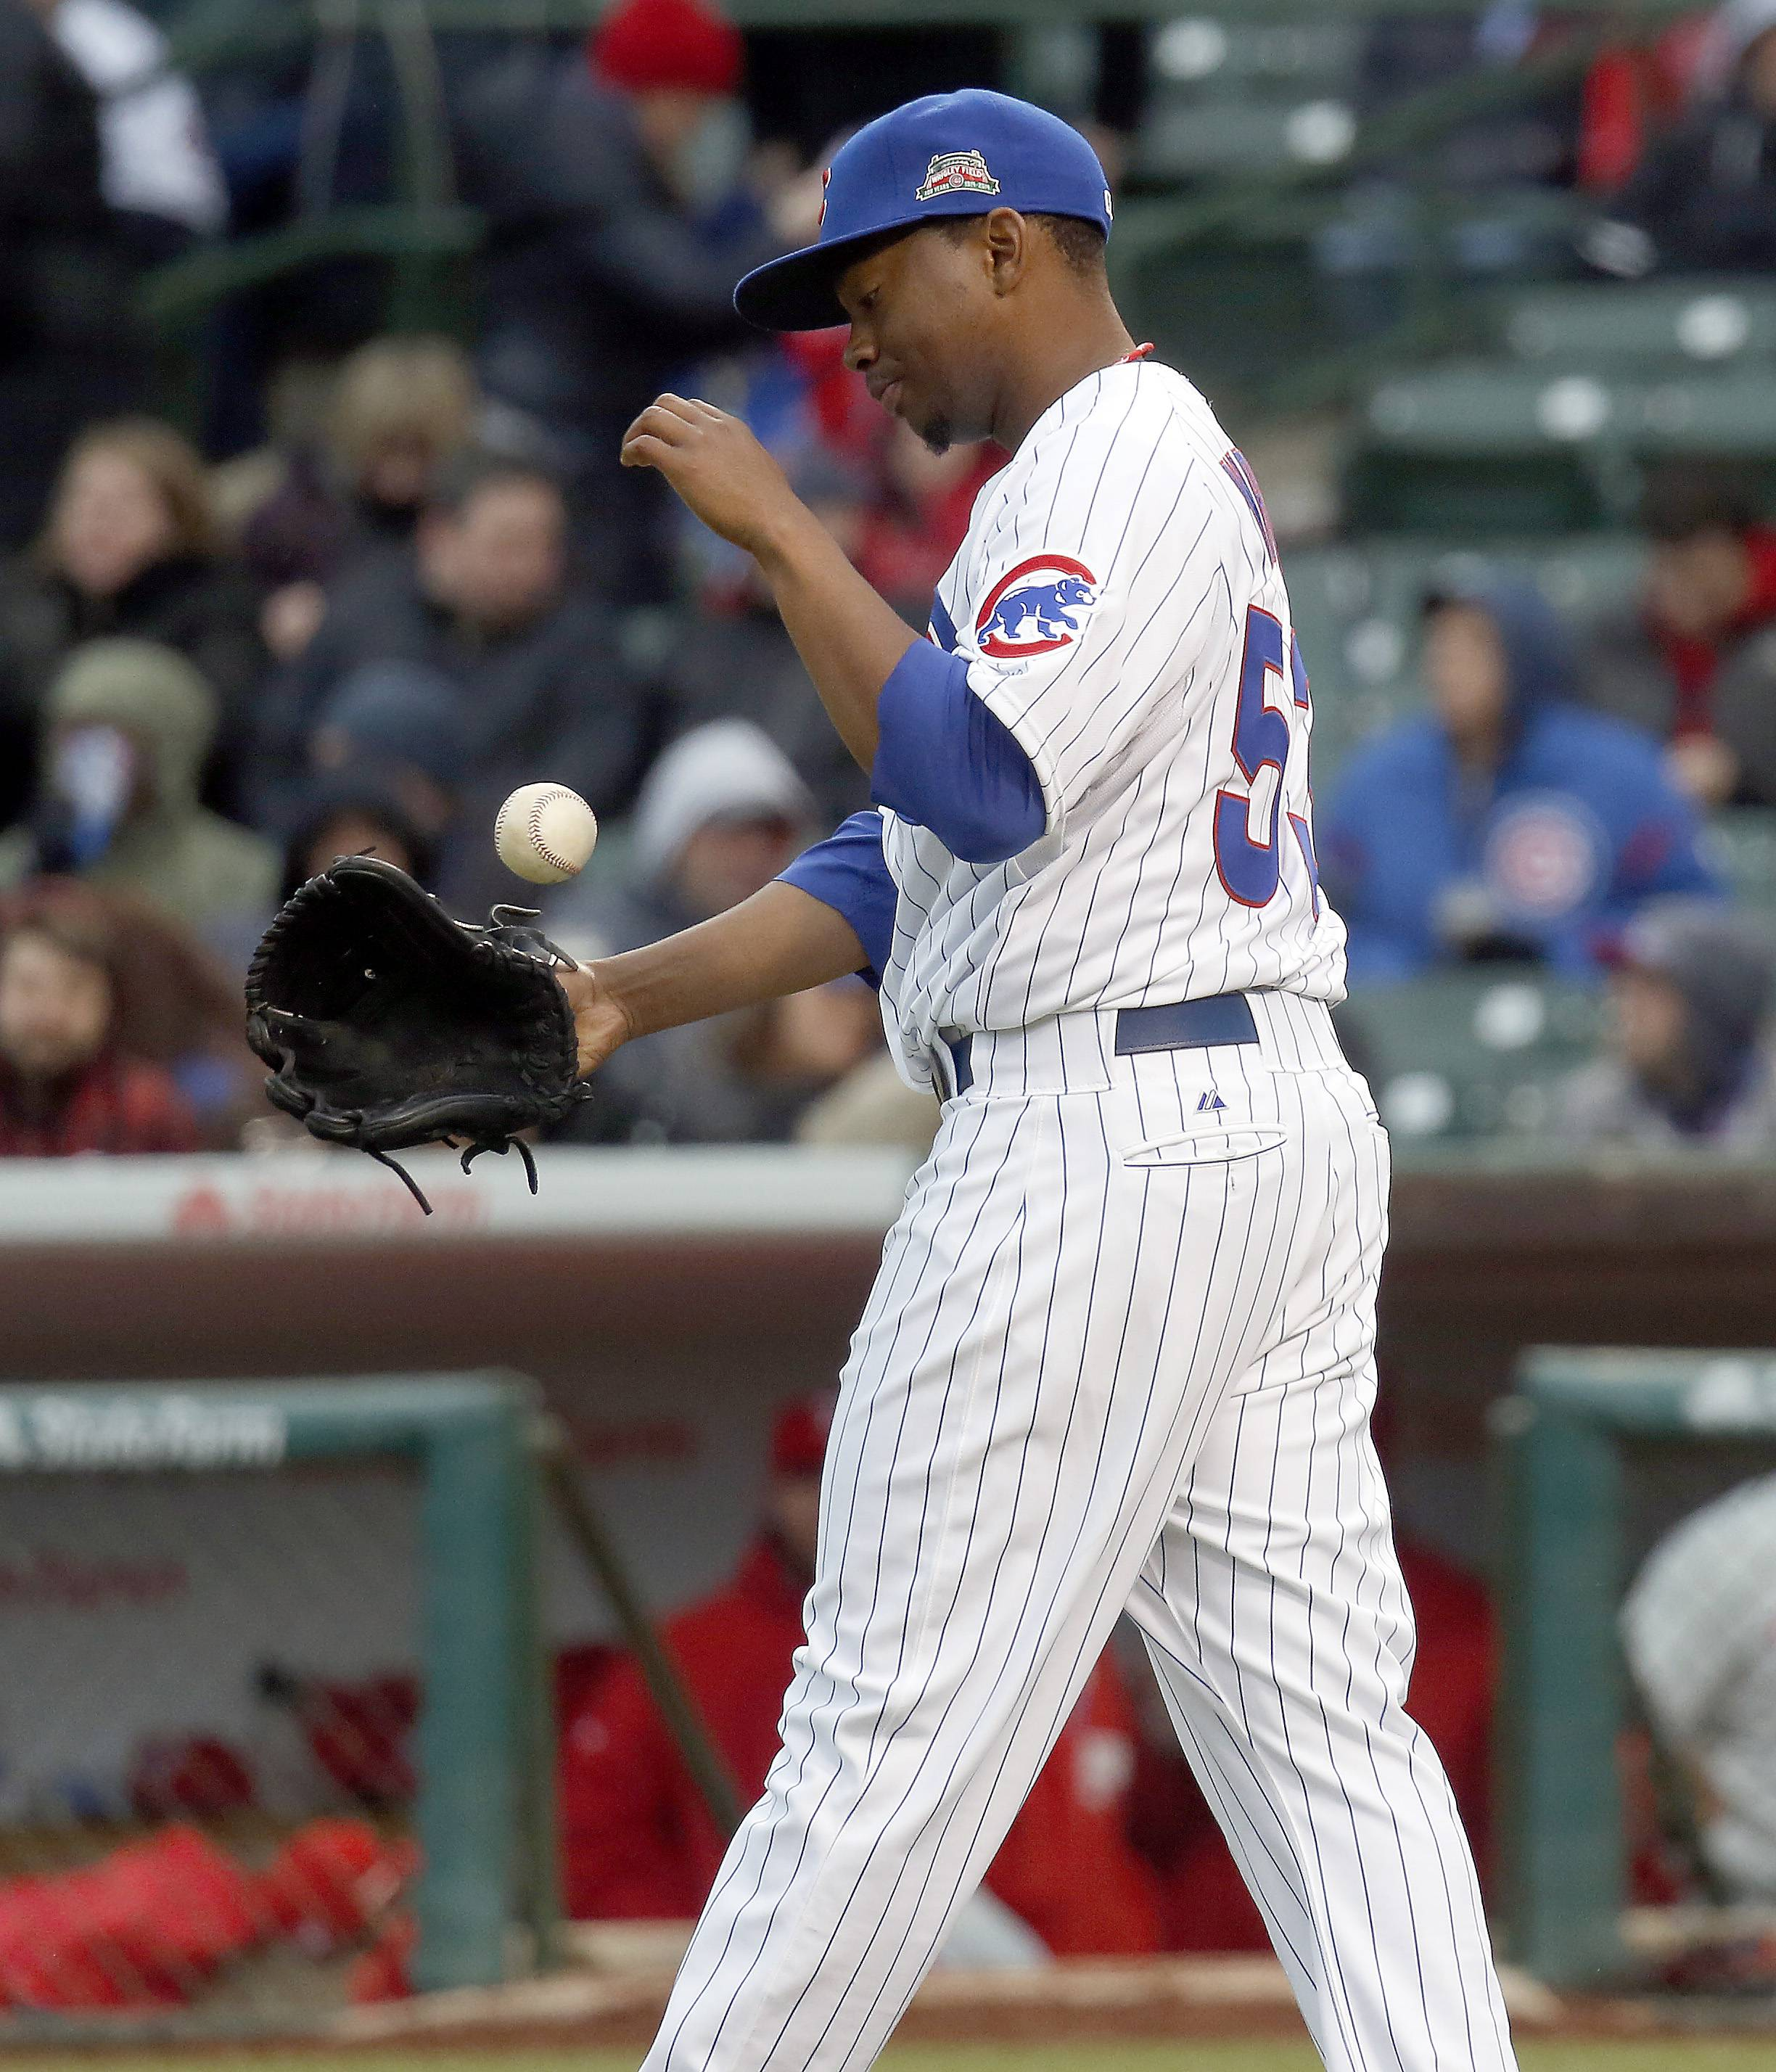 Chicago Cubs relief pitcher Wesley Wright reacts after giving up a two-run homer during the 8th inning.